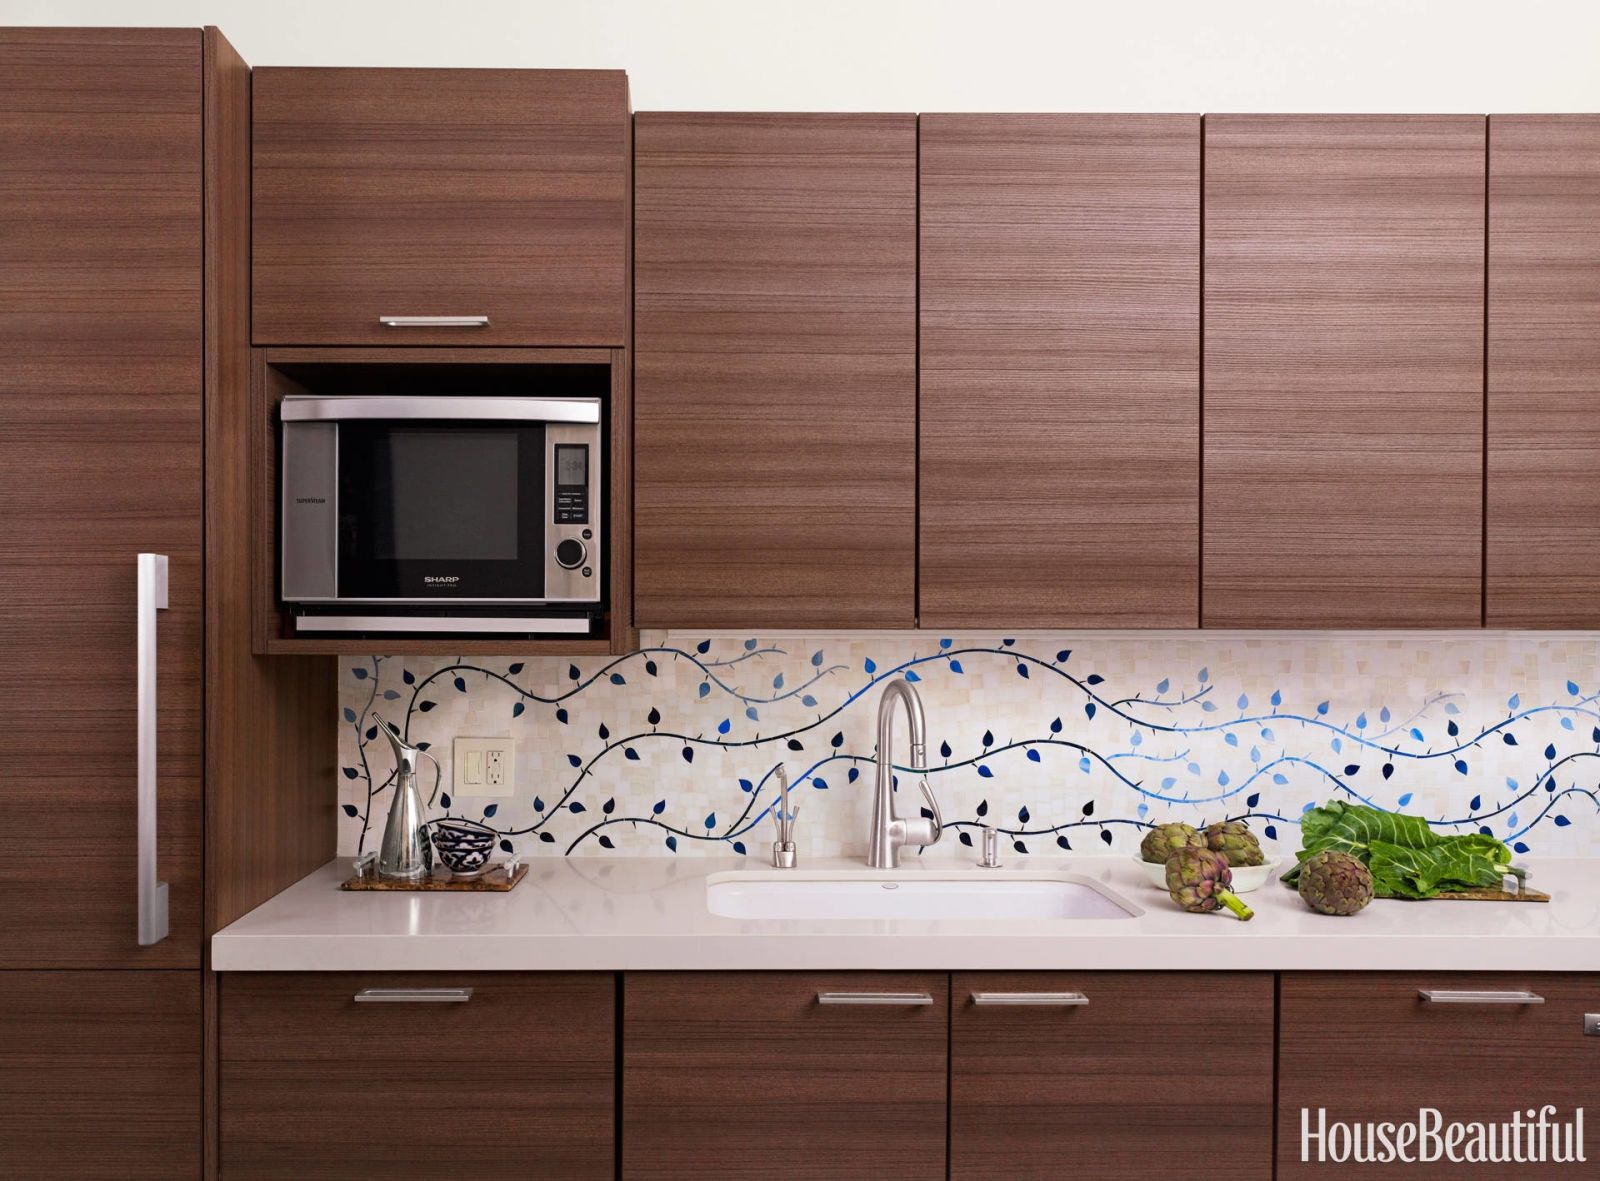 Wall tiles for kitchens design httpyonkou tei pinterest wall tiles for kitchens design dailygadgetfo Image collections